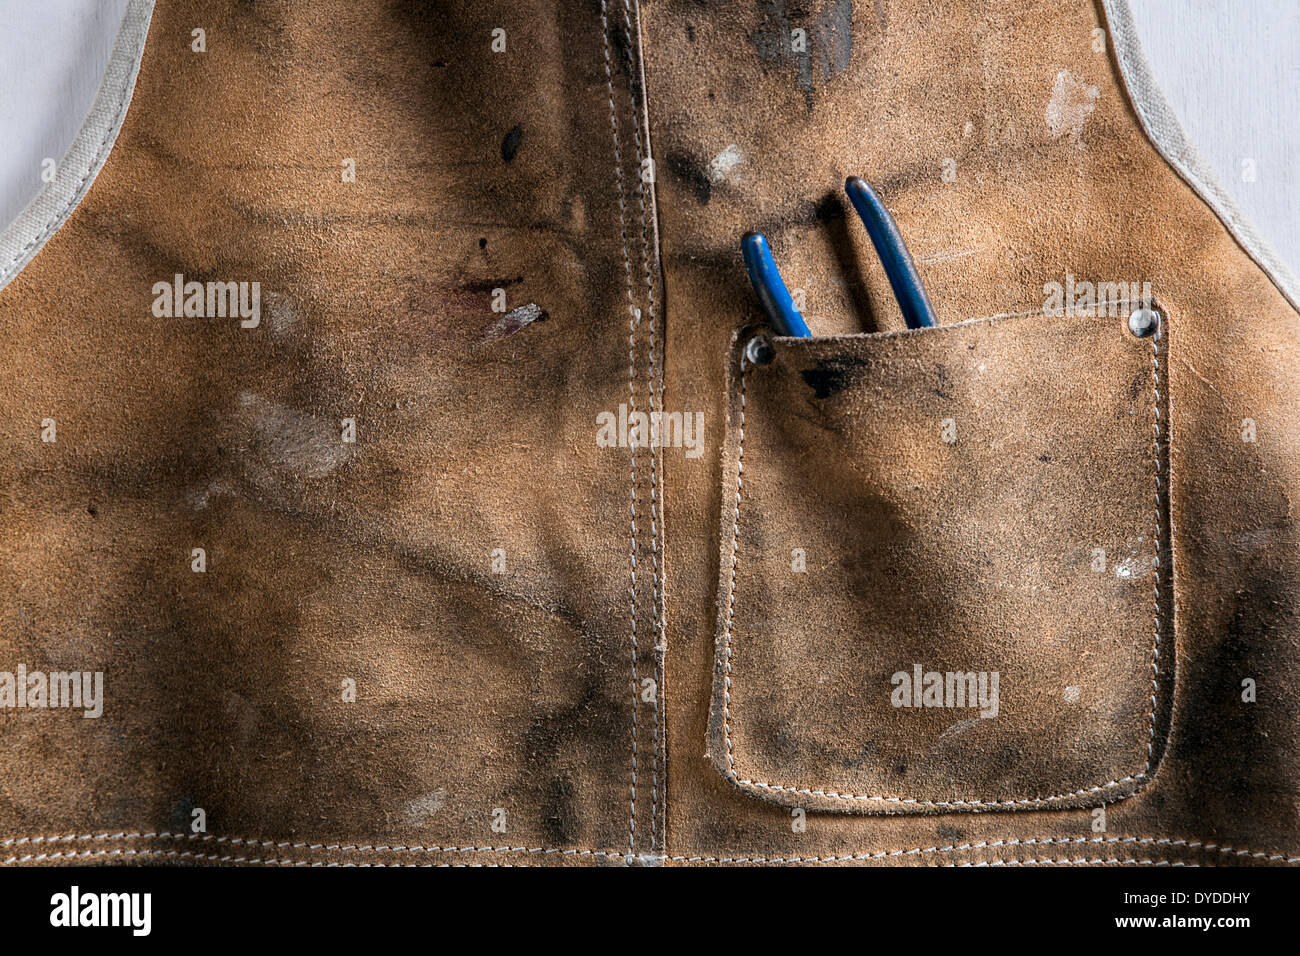 Leather workshop apron with pliers in the pocket. - Stock Image